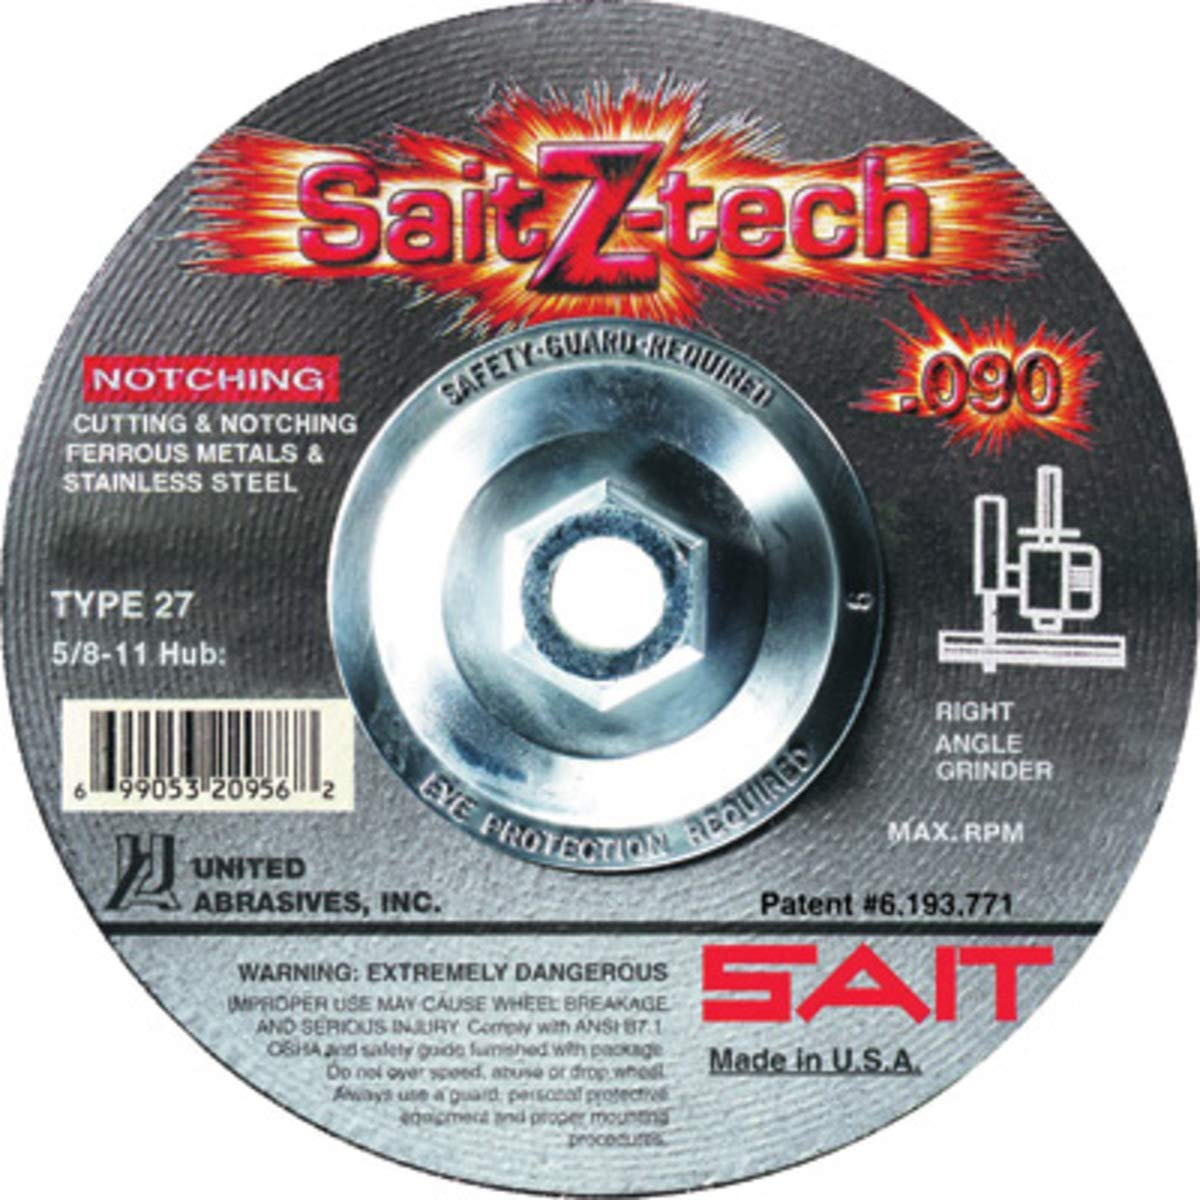 United Abrasives 4 1/2'' X .090'' X 5/8'' - 11 SaitZ-tech Zirconium Type 27 Cut Off Wheel, 10 Each